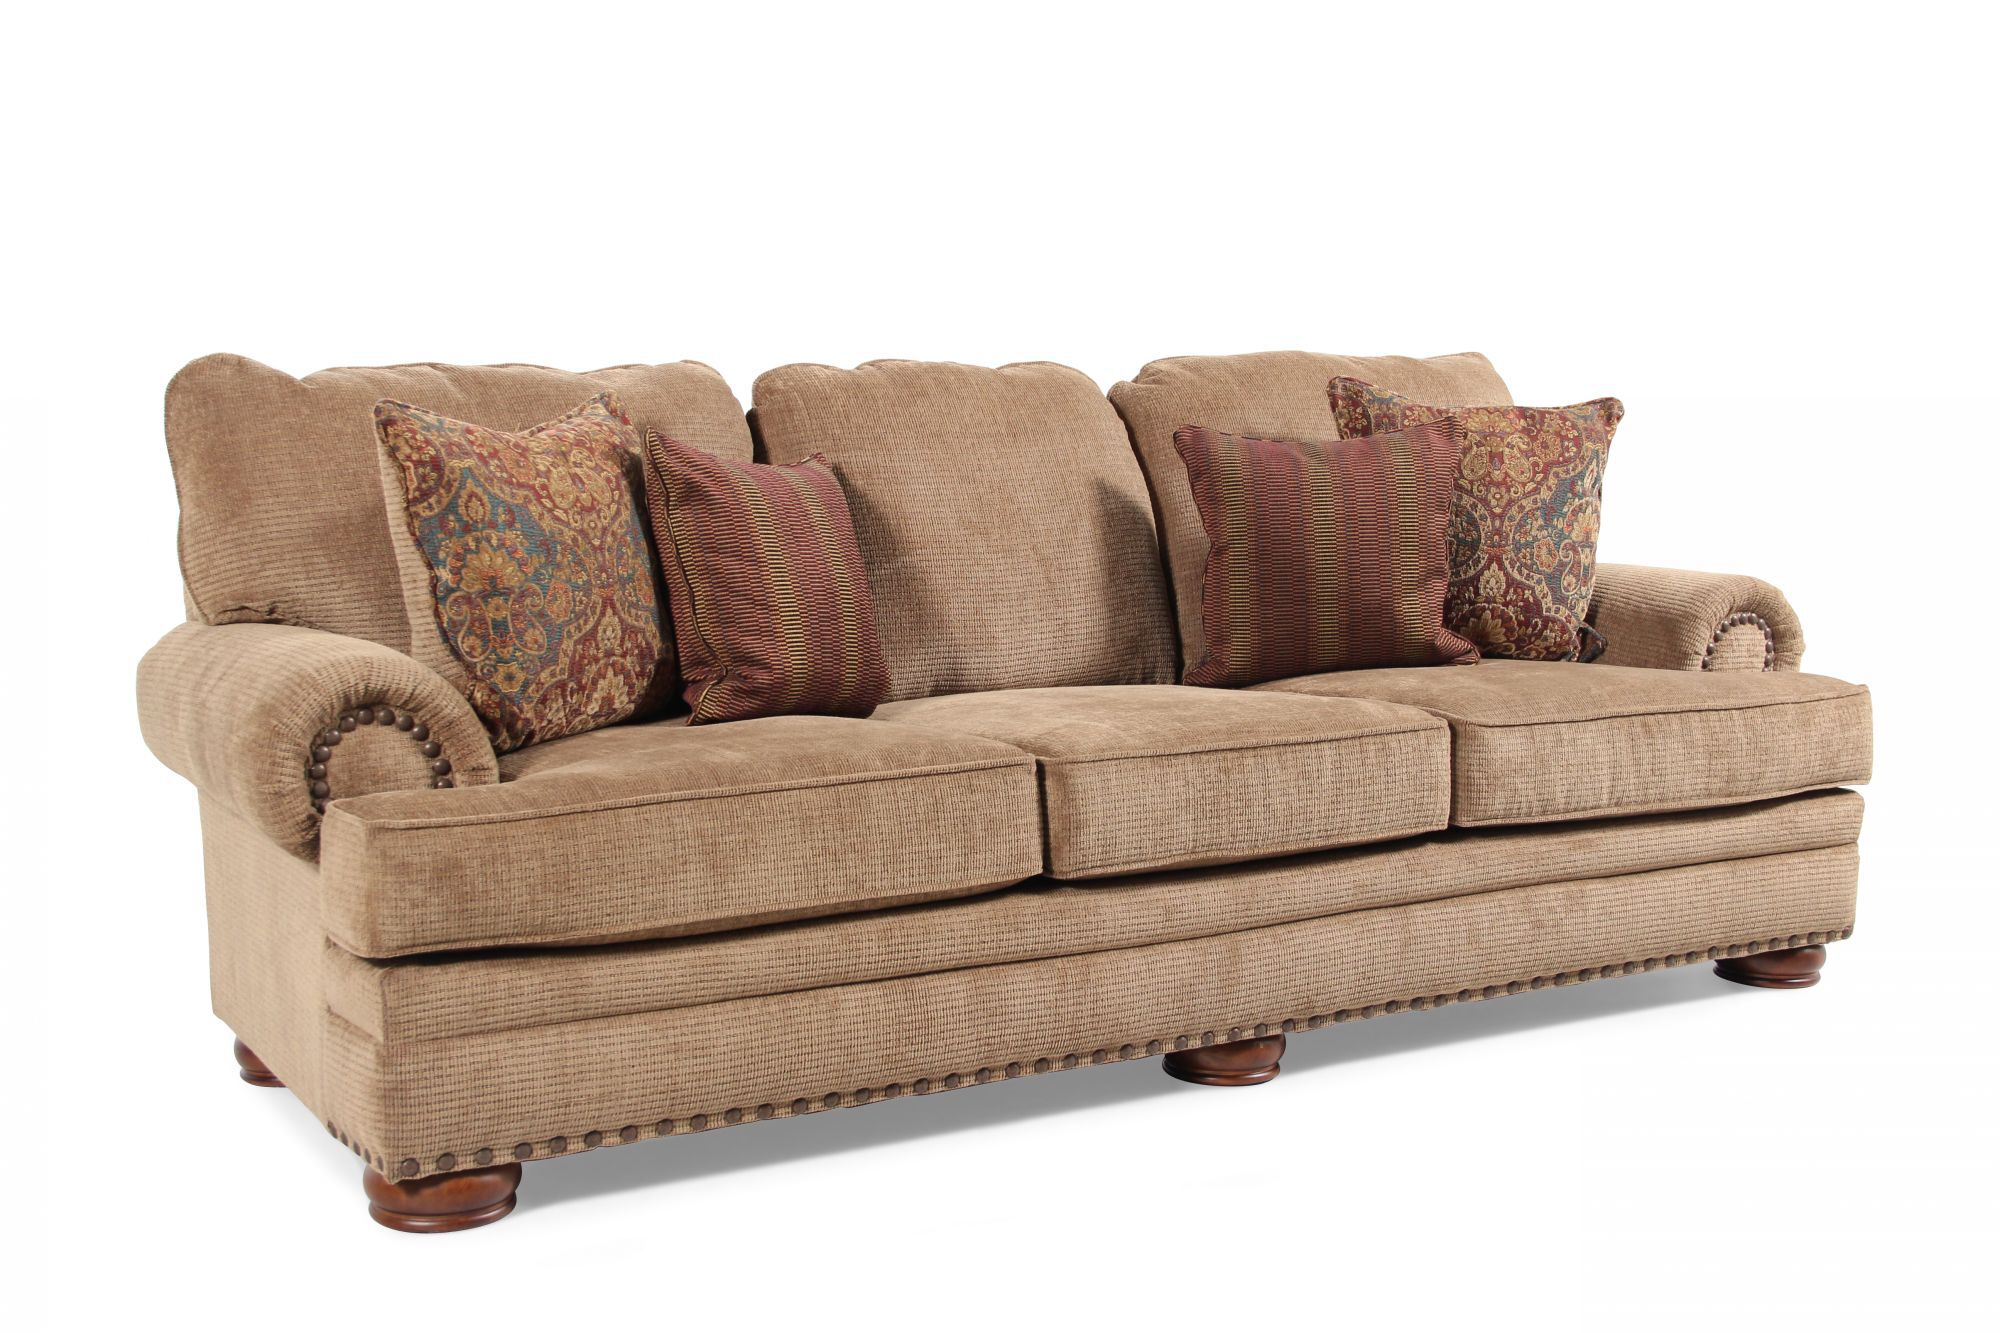 durham sofa by birch lane leather automatic reclining furniture sofas they arrived